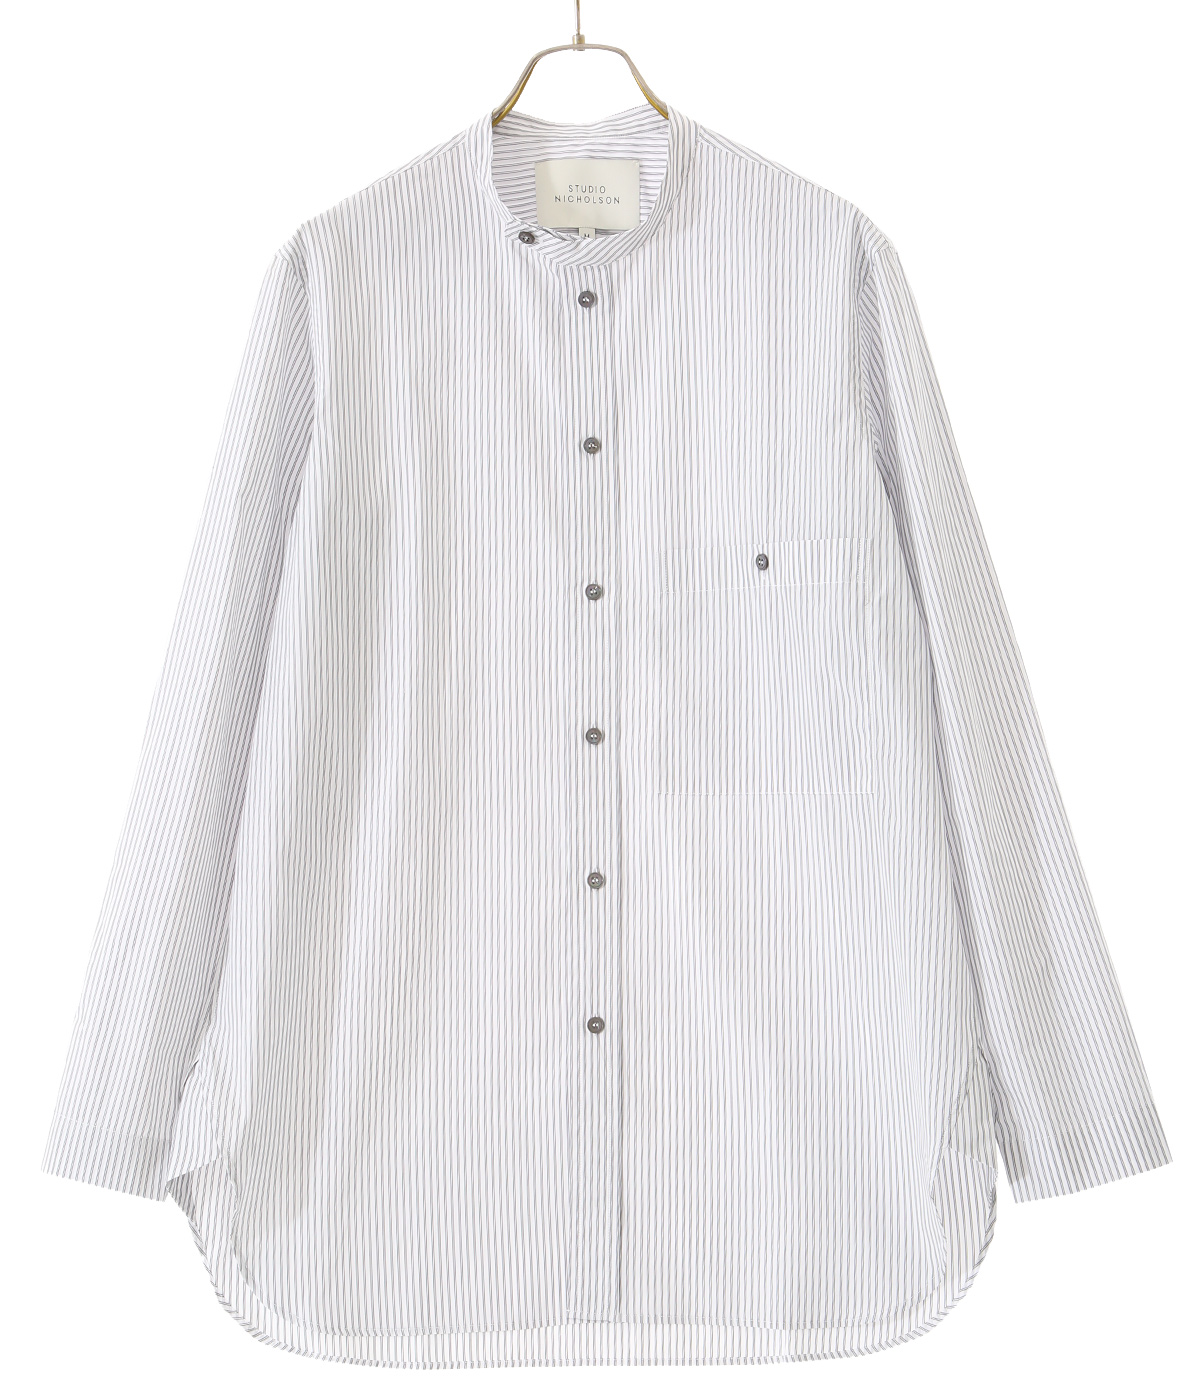 TENUTO PUMINO TRIPLE STRIPE STAND COLLAR LONG SLEEVE SHIRT